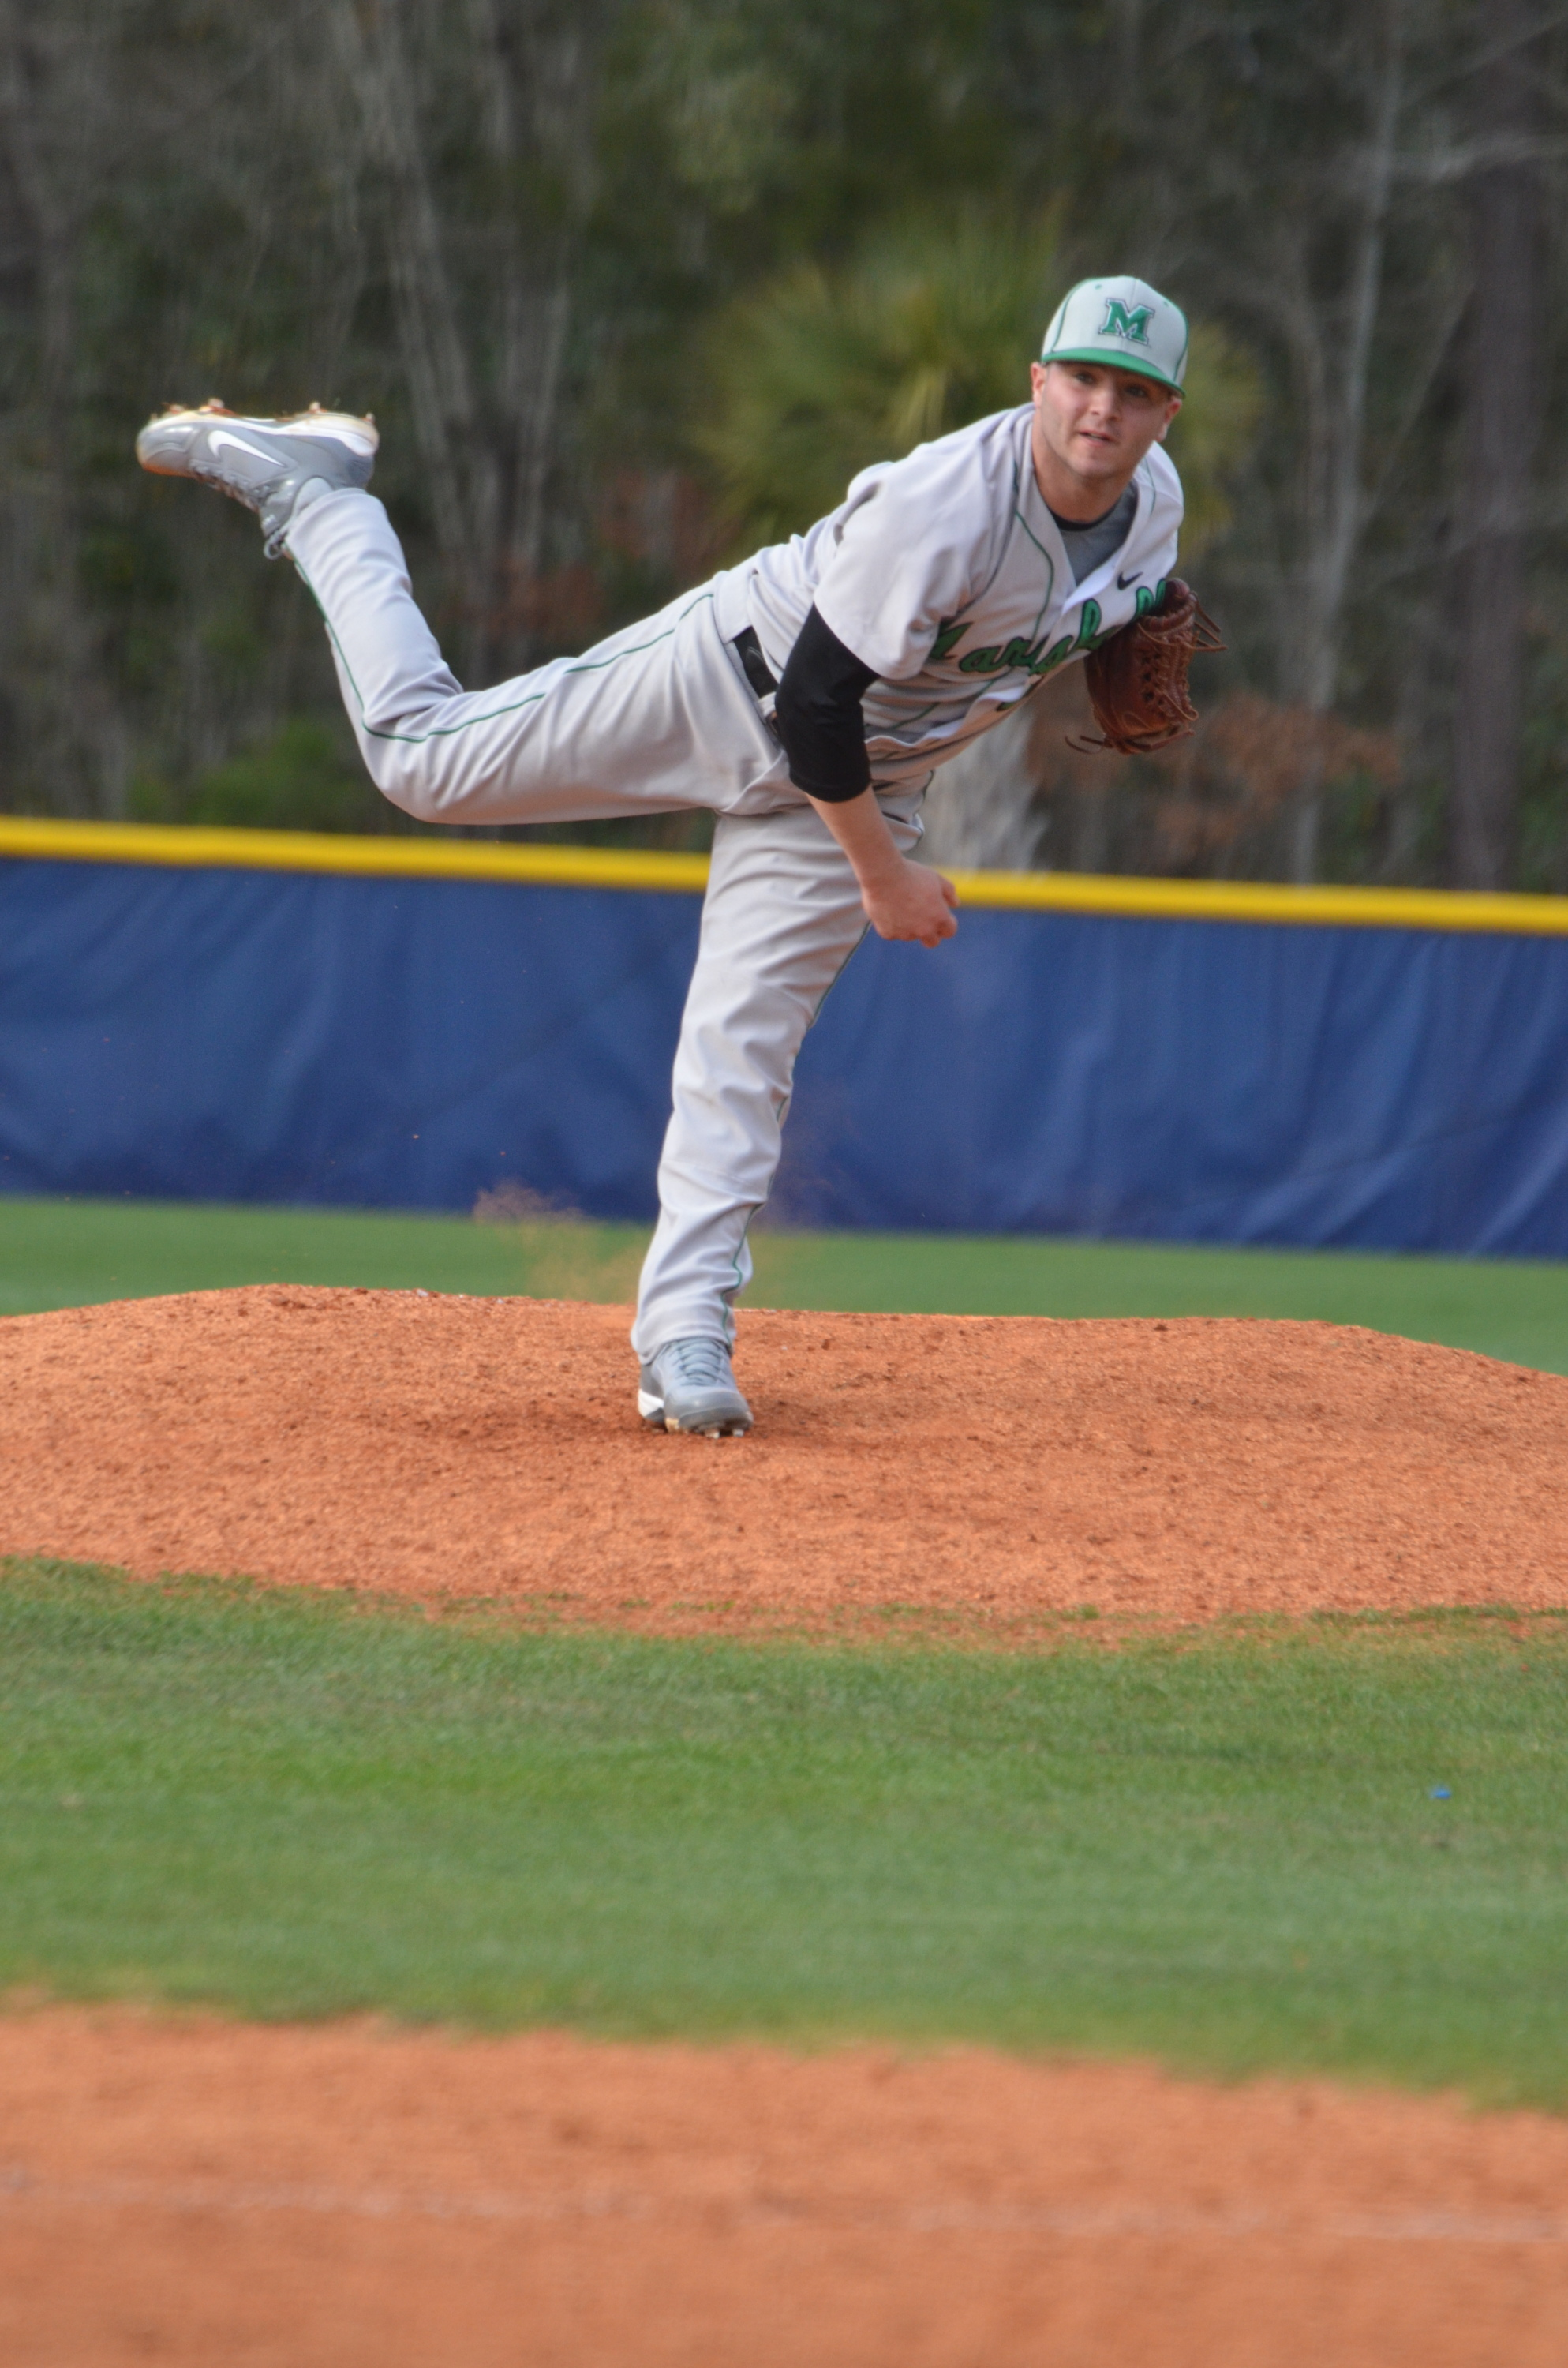 Starting pitching Matt Margaritonda tied his career high with six K's in the game